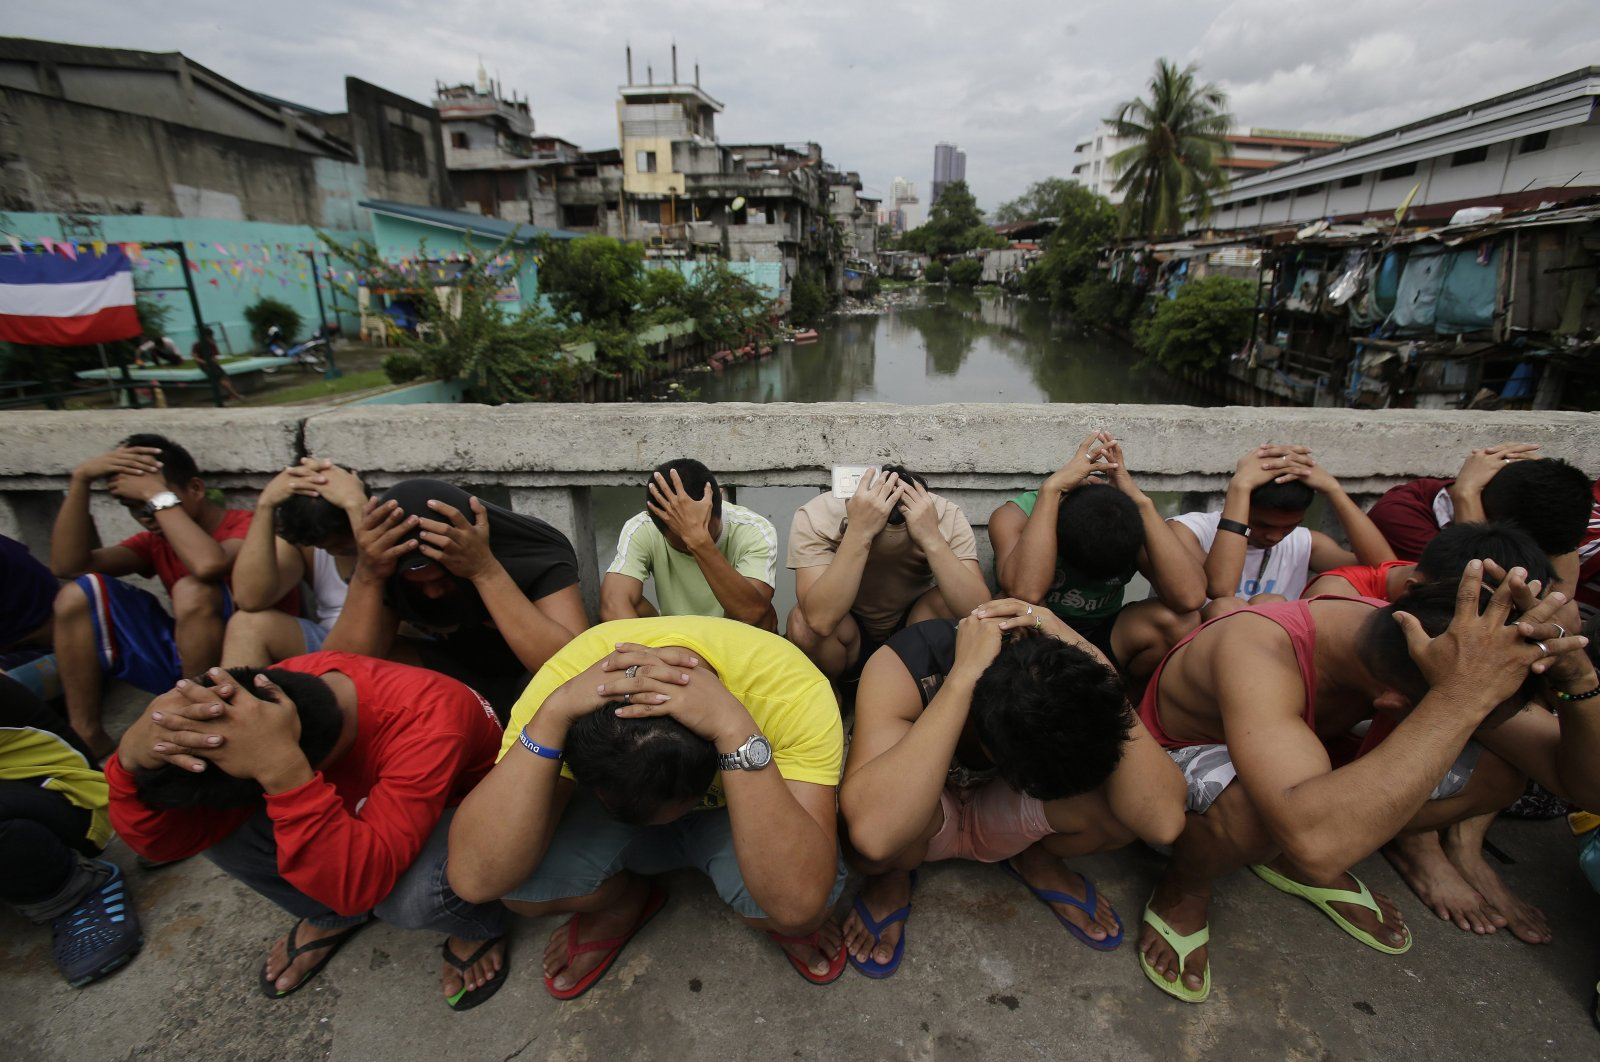 """Filipino men place their hands over their heads as they are rounded up during a police operation as part of the continuing """"War on Drugs"""" campaign of Philippine President Rodrigo Duterte in Manila, the Philippines, Oct. 7, 2016. (AP Photo)"""